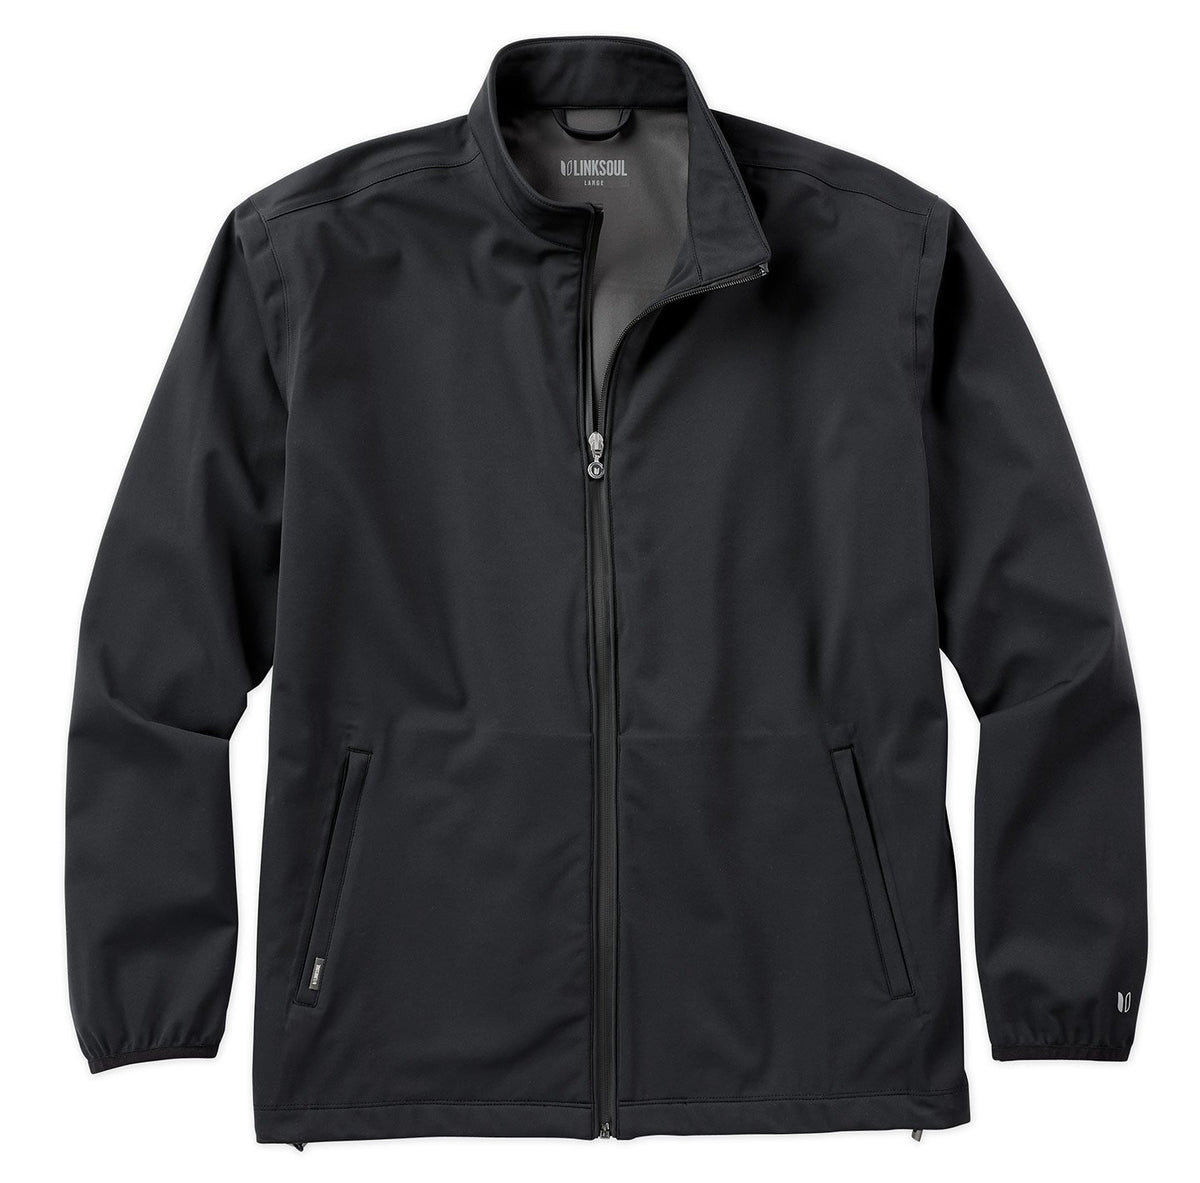 Polartec Rain Suit Jacket